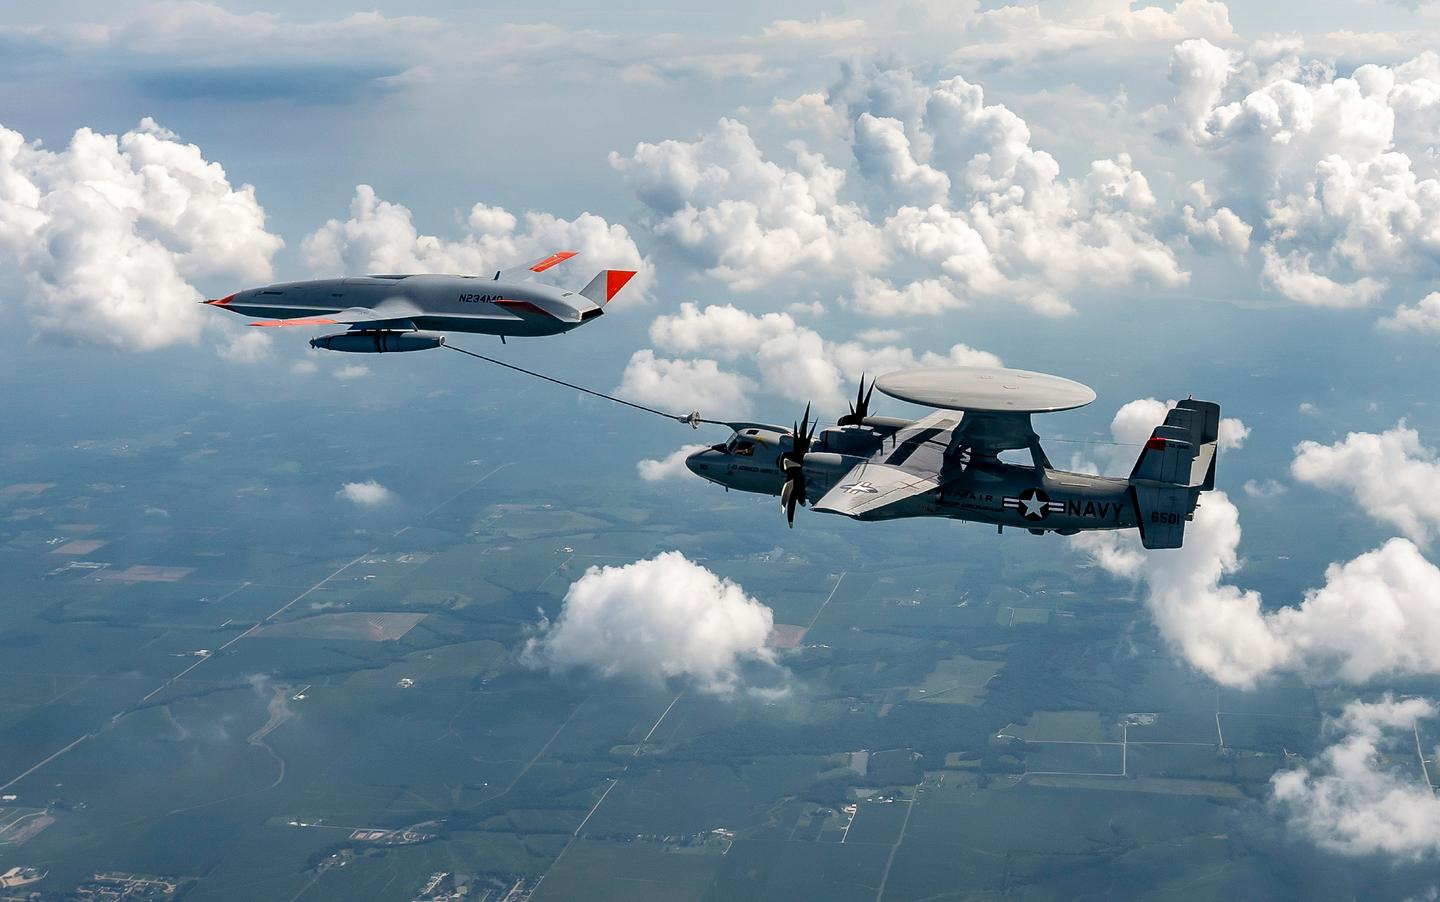 Boeing's MQ-25 T1 refuels a U.S. Navy E-2D command and control aircraft